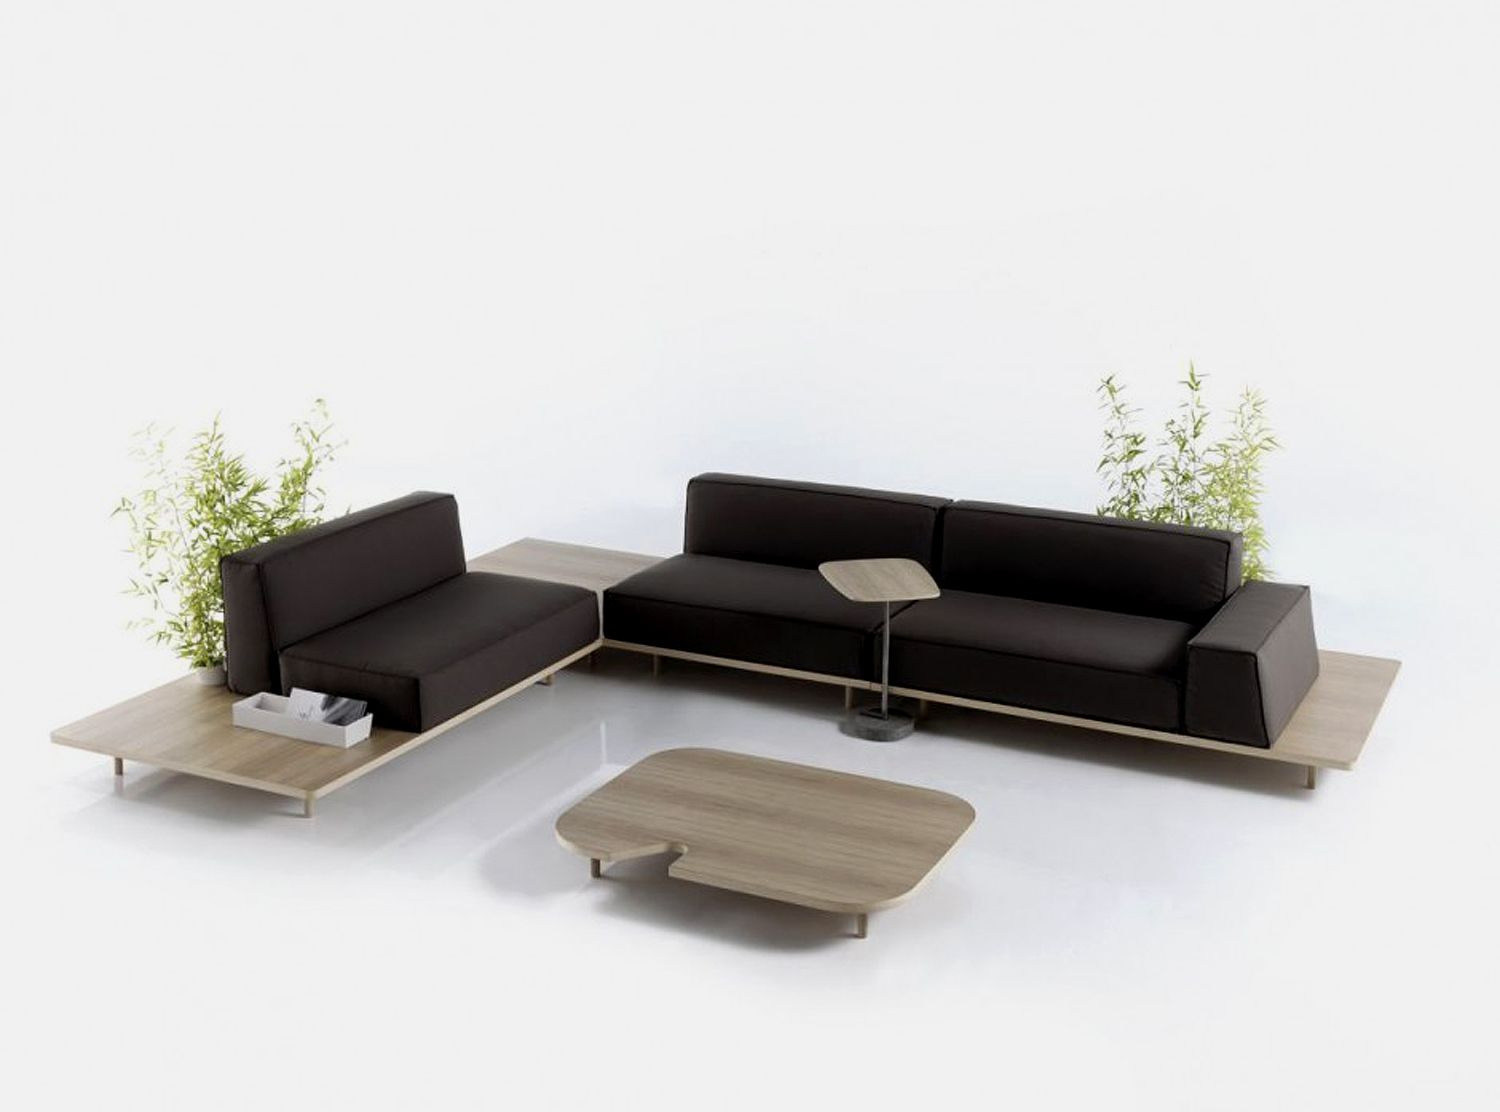 Modern sofa chairs design - Contemporary Furniture Designs Ideas